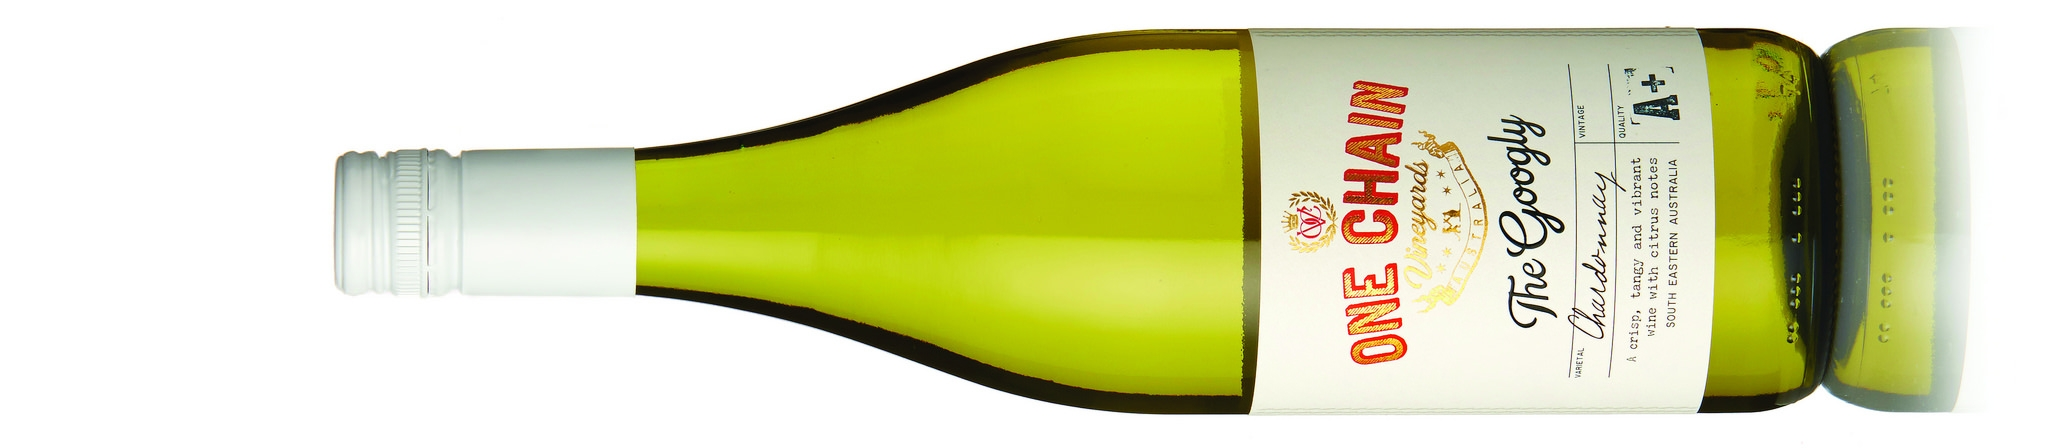 The Googly Chardonnay    ザ グーグリー シャルドネ    希望小売価格 ¥1,750   Alc: 13.5% 2017  Suitable for Vegetarians  SA Limestone Coast, 2 Months; French100 % new oak, This Chardonnay is sourced from cooler climate vineyards to give a delicious, tangy white wine. Crisp, lively and bright, this citrus scented Chardonnay is well balanced, with tropical fruit and melon on the palate before presenting a vibrant, textured finish. 100% Chardonnay  ヴェジタリアン向けワイン  サウス・オーストラリア州のライムストーン・コースト産。フランス産オークで2ヶ月熟成、新樽100%。冷涼な気候の畑で育ったシャルドネをアクセントに、クリスプで新鮮な味わいの白ワイン。シトラスの風味がトロピカルフルーツやメロンとバランスし、テクスチュアのあるフィニッシュ。100%シャルドネ  詳しく